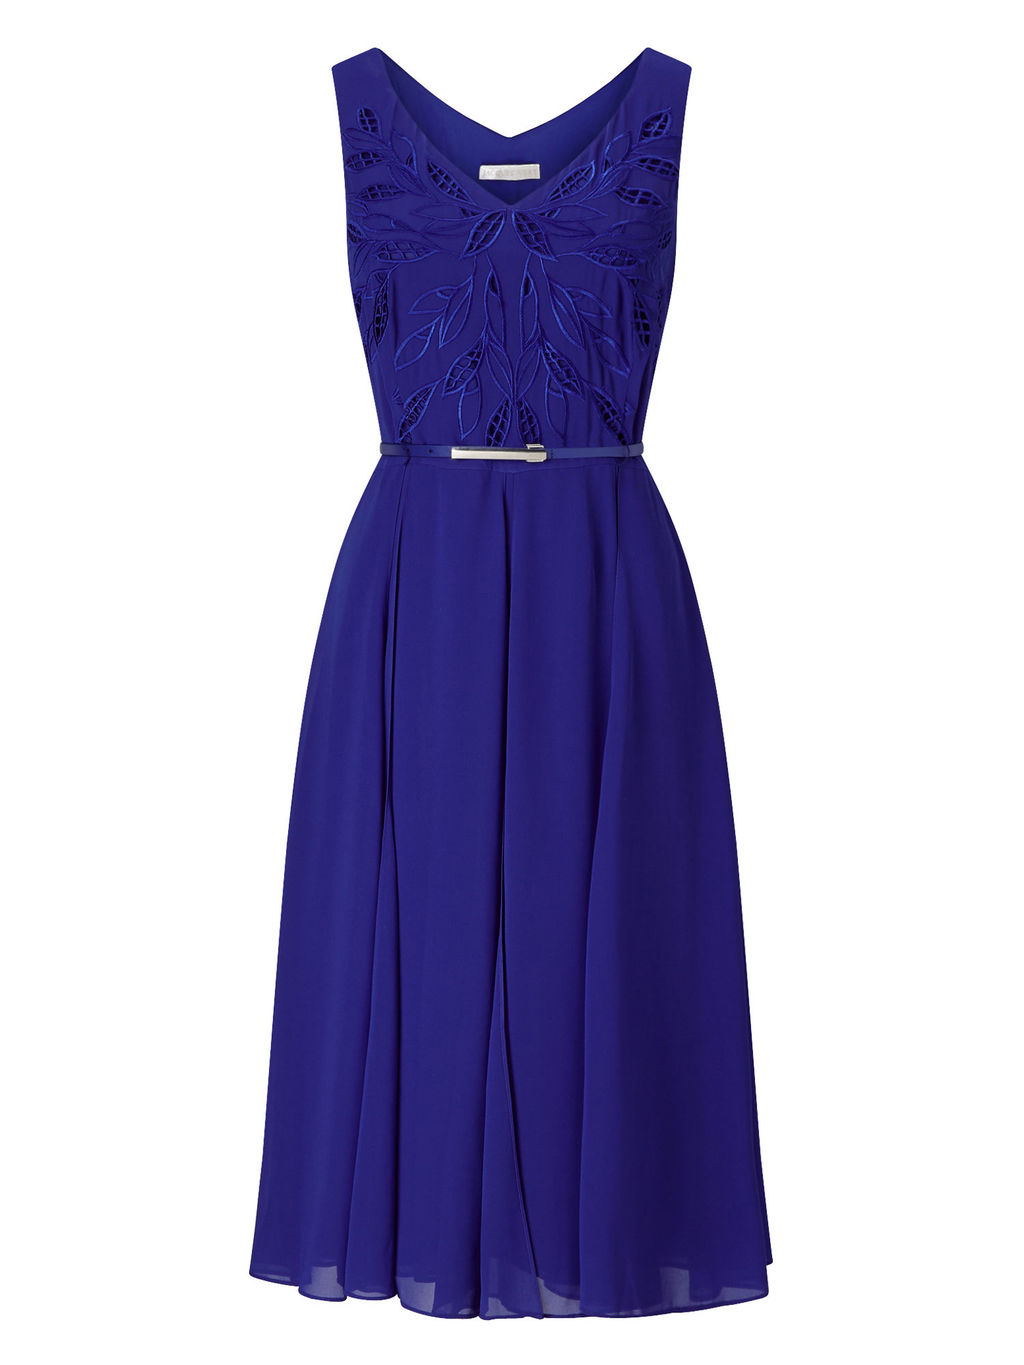 Cutwork Dress - length: below the knee; neckline: v-neck; pattern: plain; sleeve style: sleeveless; waist detail: belted waist/tie at waist/drawstring; predominant colour: royal blue; fit: fitted at waist & bust; style: fit & flare; fibres: polyester/polyamide - 100%; occasions: occasion; hip detail: subtle/flattering hip detail; sleeve length: sleeveless; texture group: sheer fabrics/chiffon/organza etc.; pattern type: fabric; season: s/s 2016; wardrobe: event